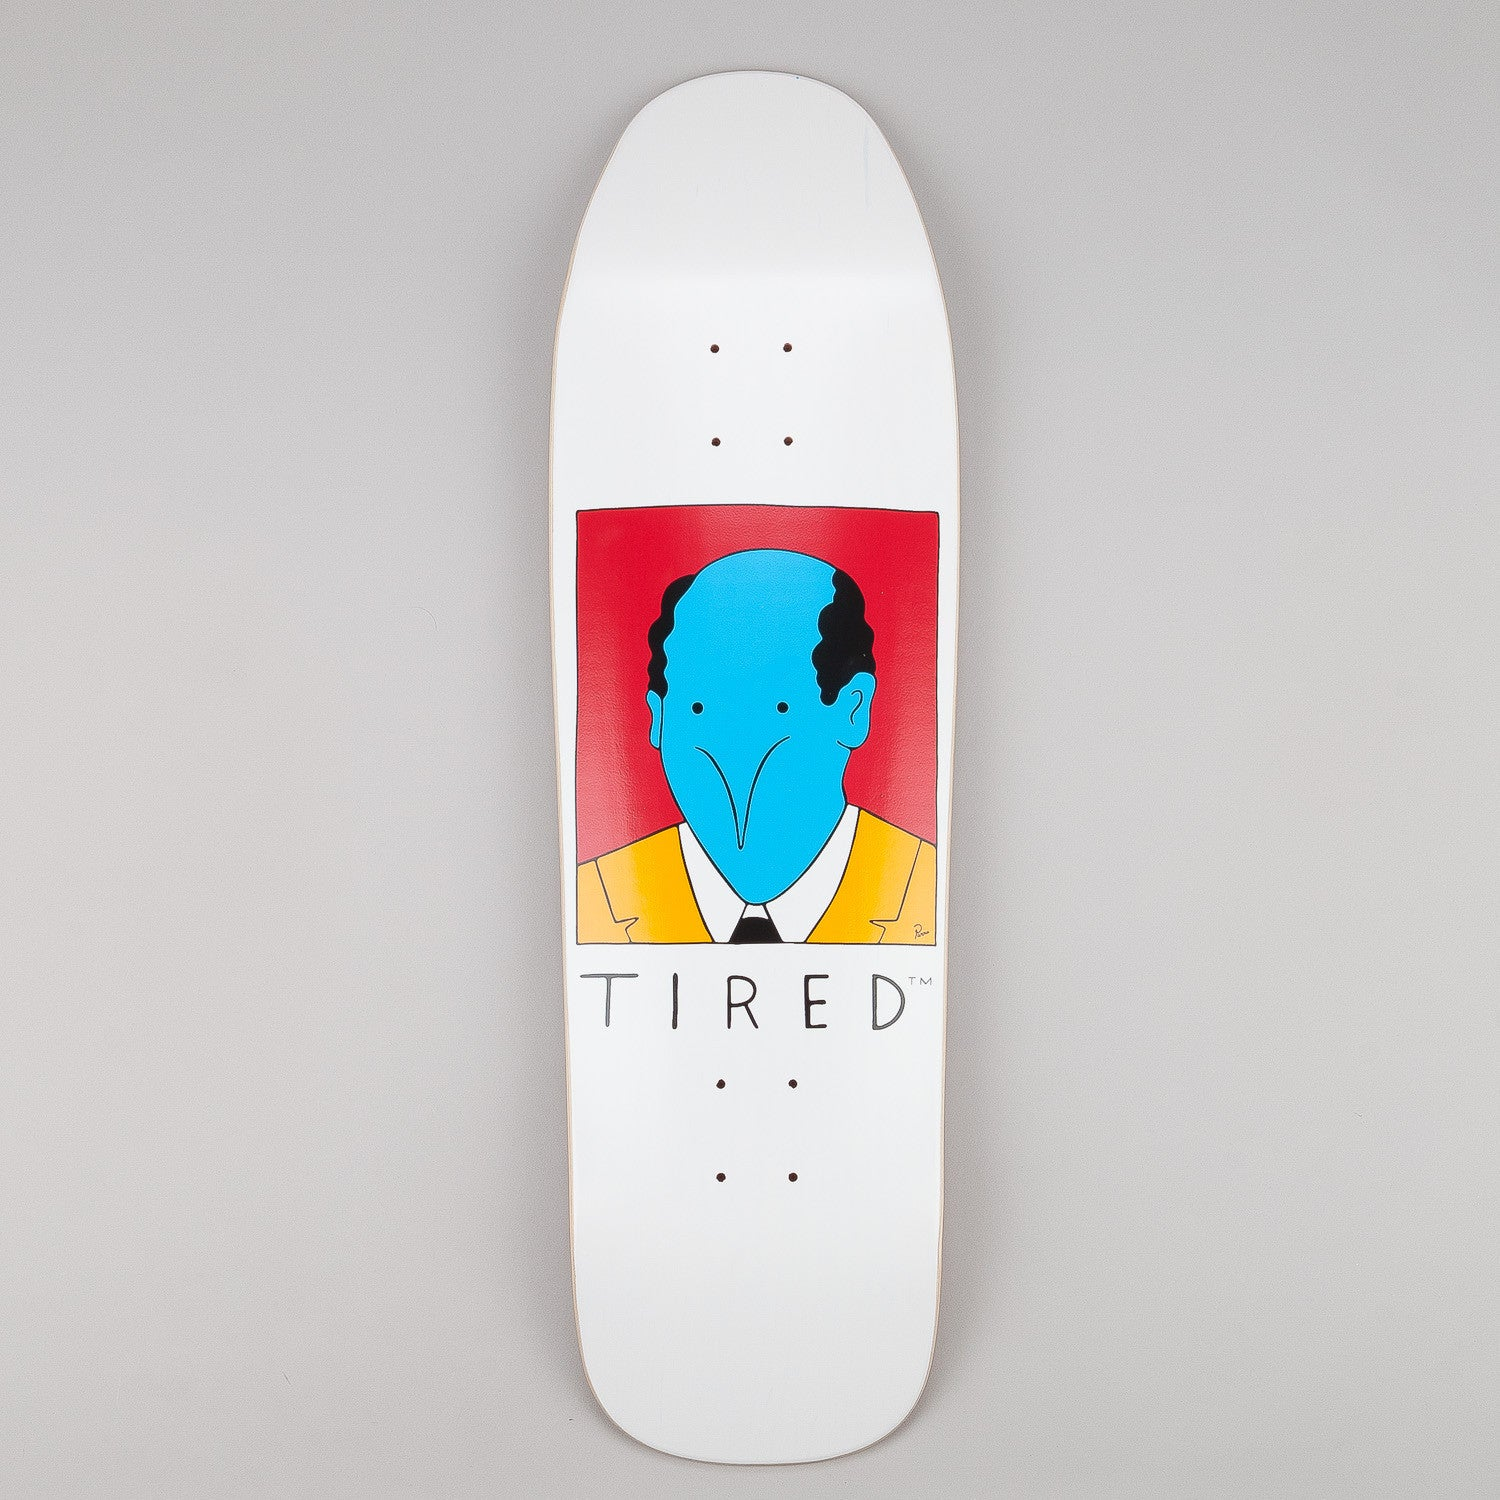 Tired Bald Guy Deck 9.25""